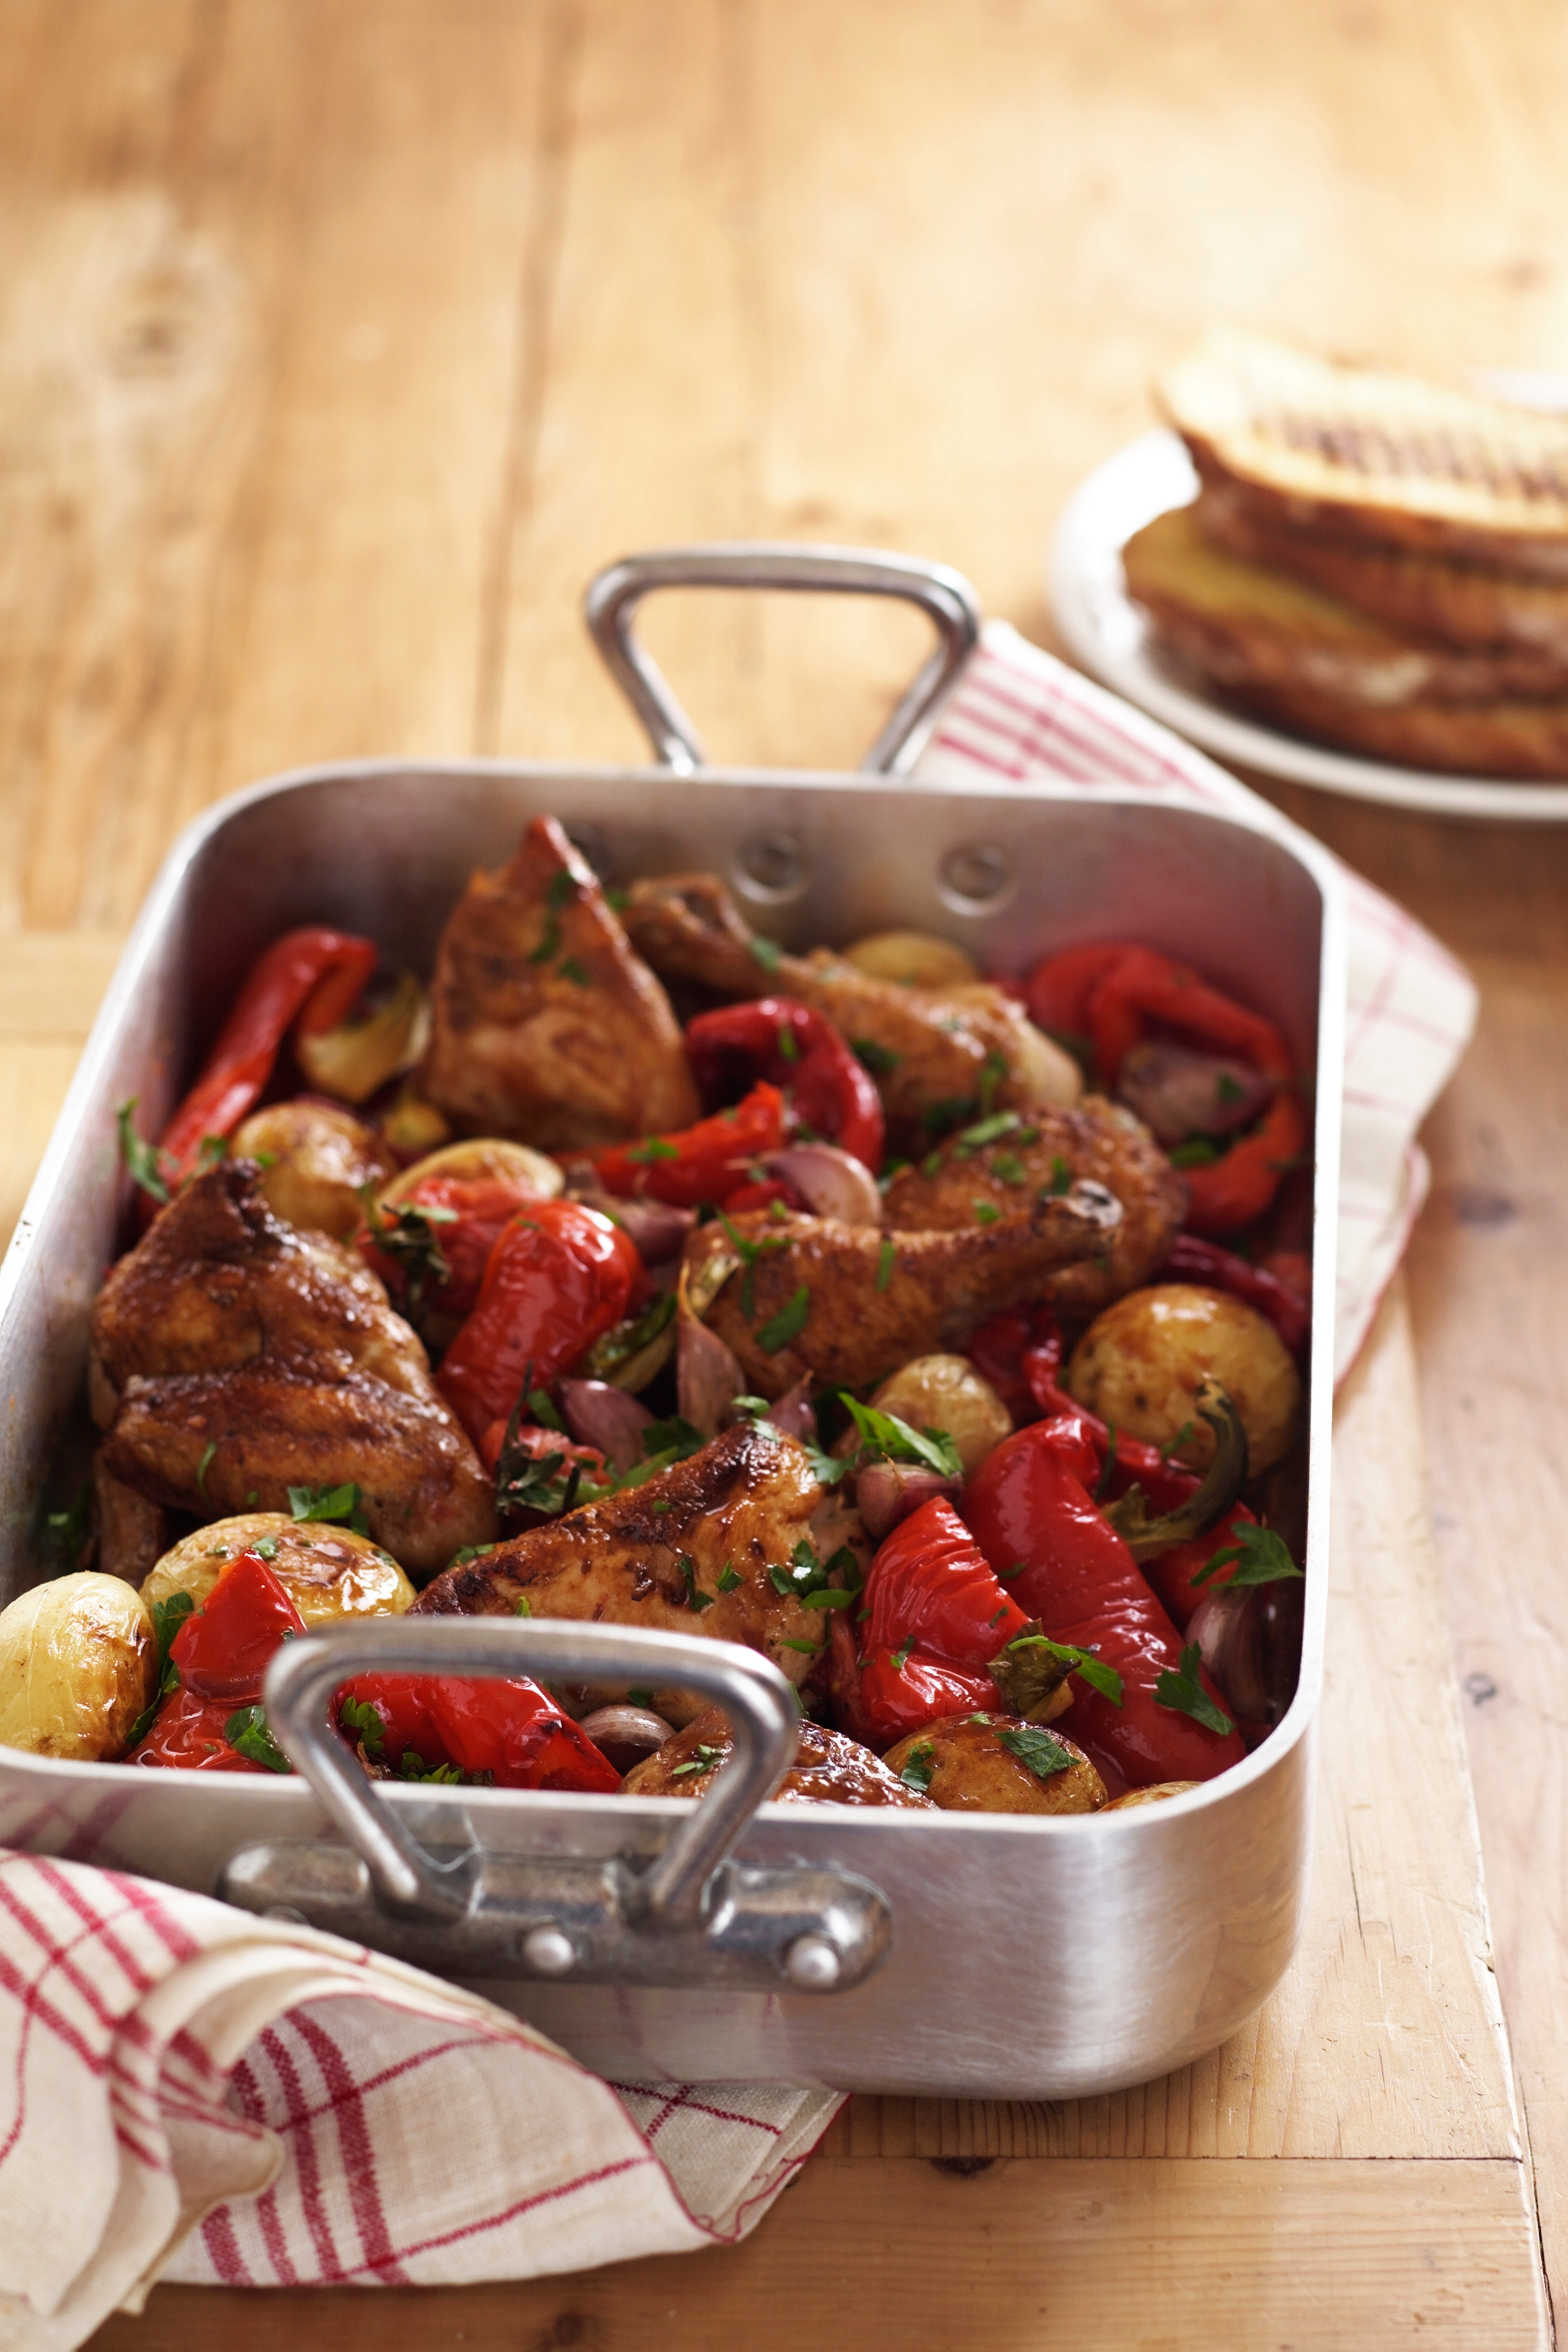 Roast chicken and vegetables in roasting tin